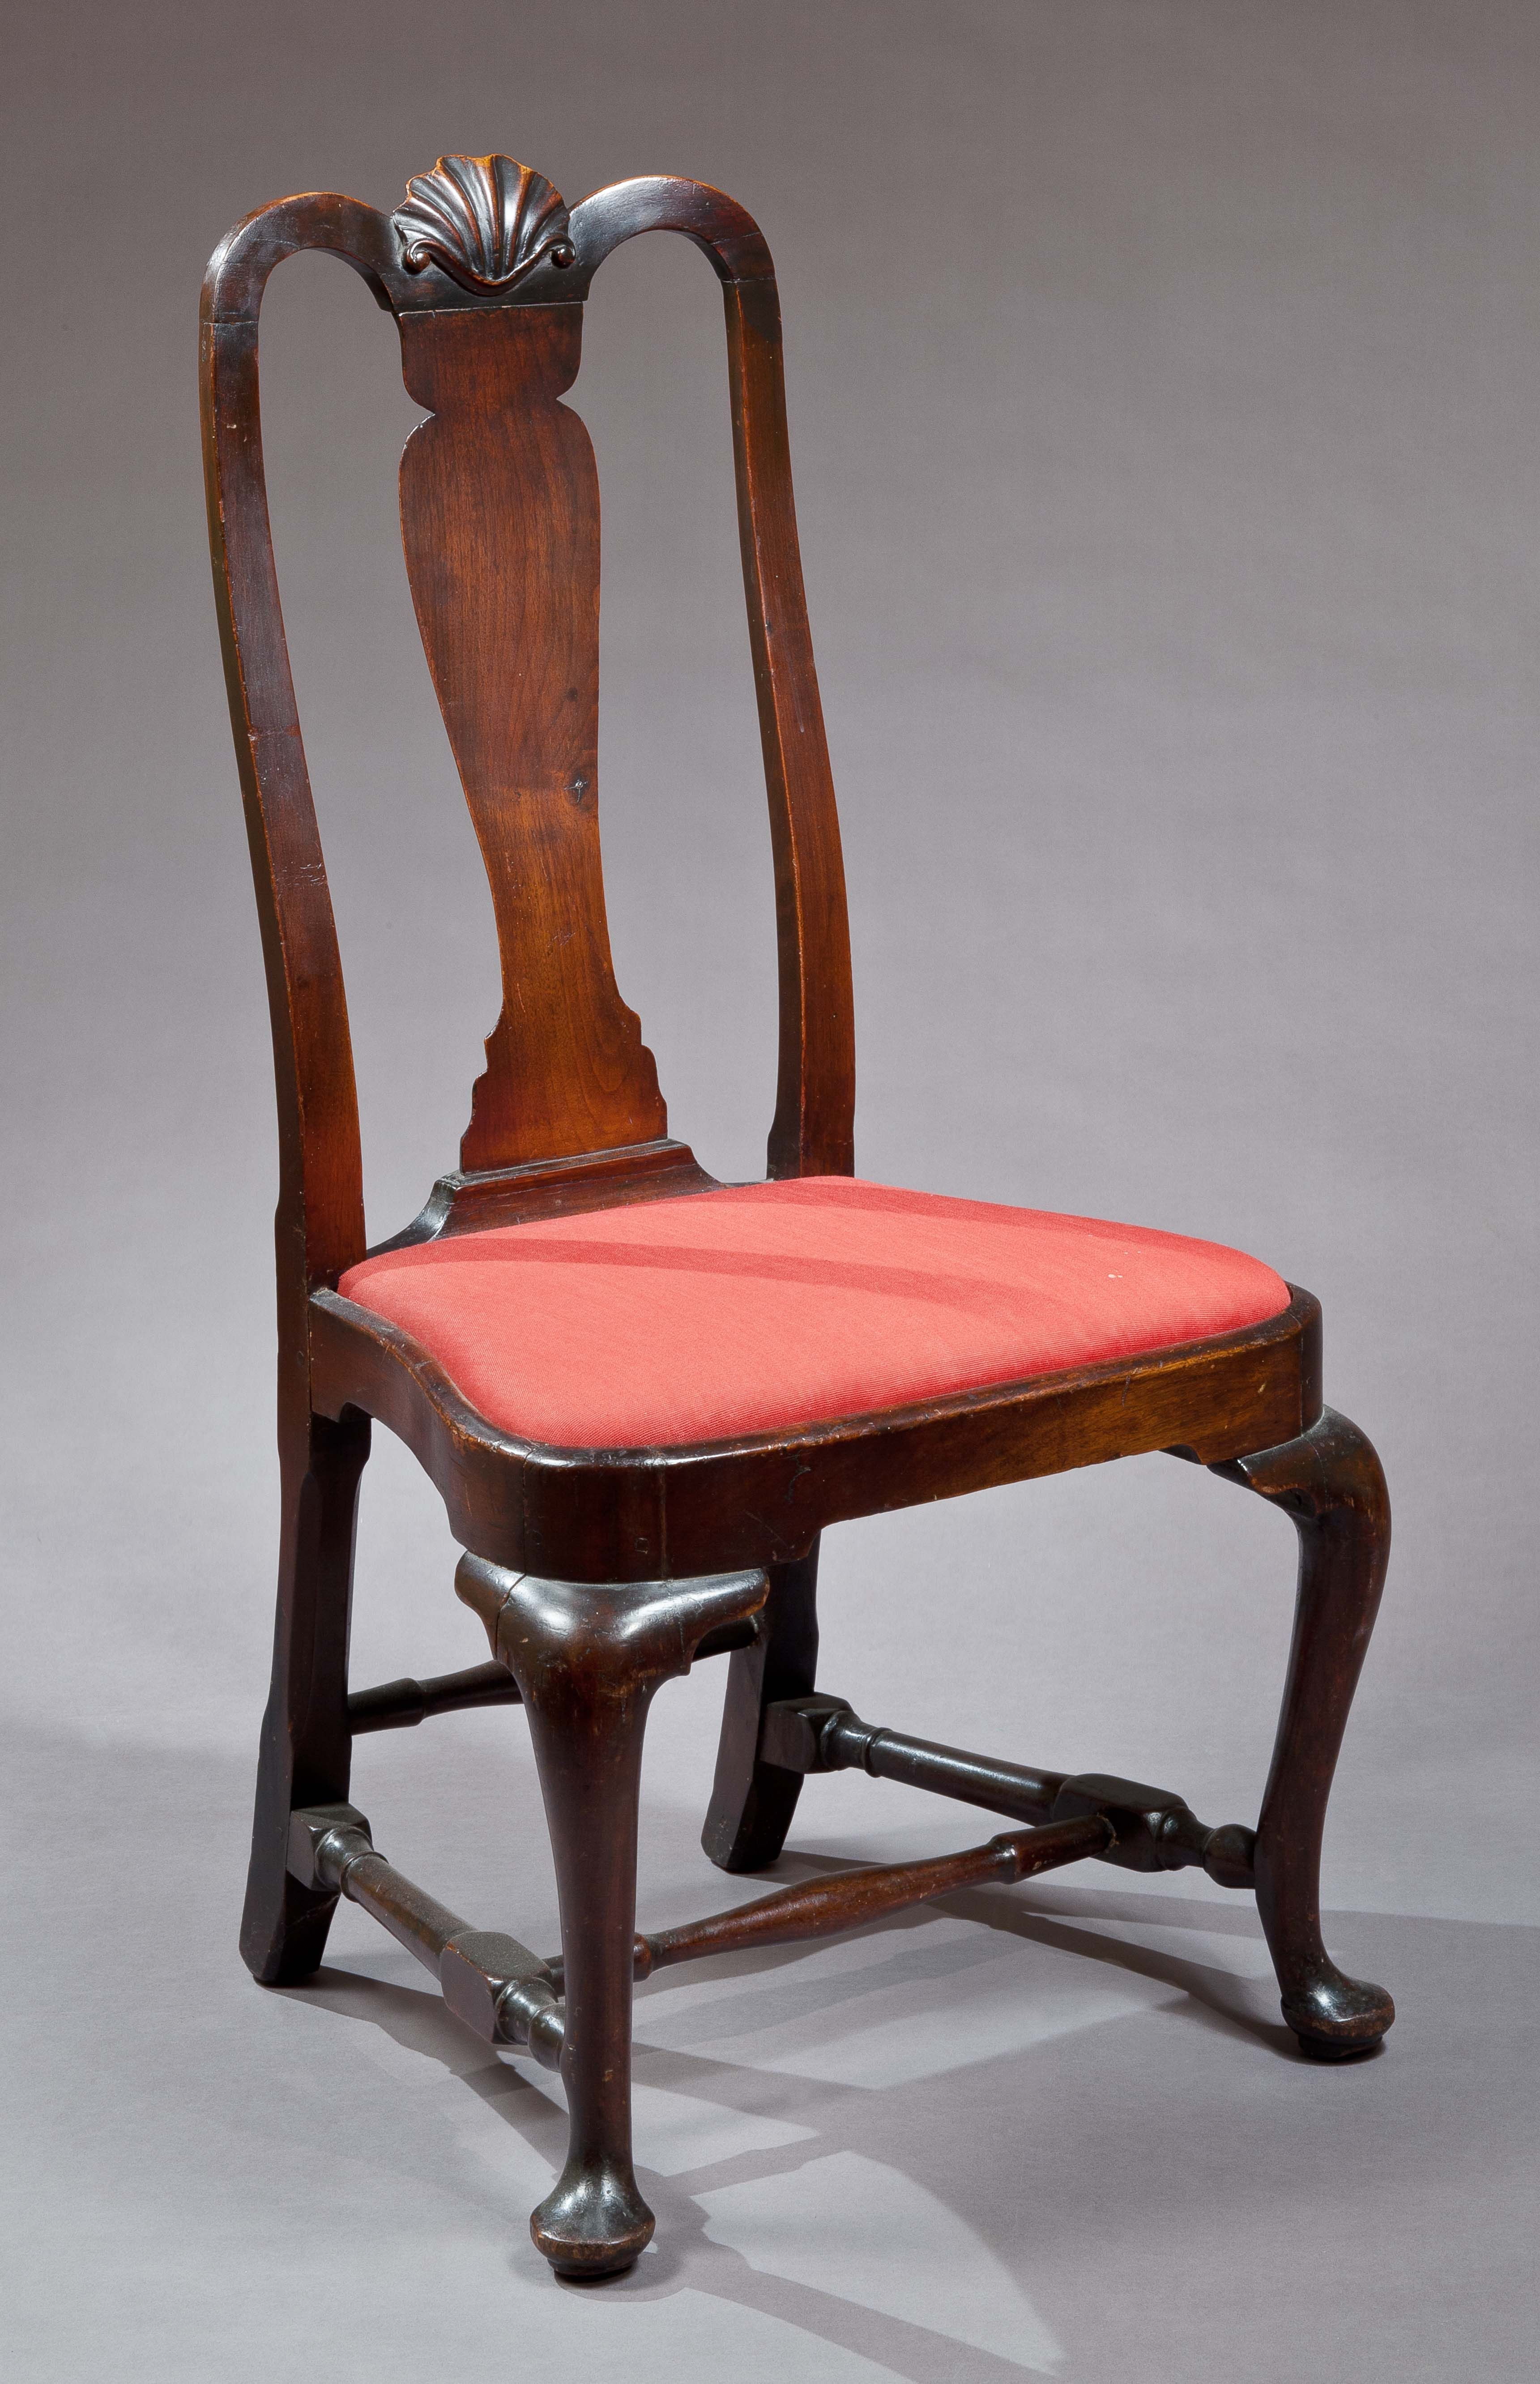 QUEEN ANNE SIDE CHAIR WITH A CARVED SHELL New England probably